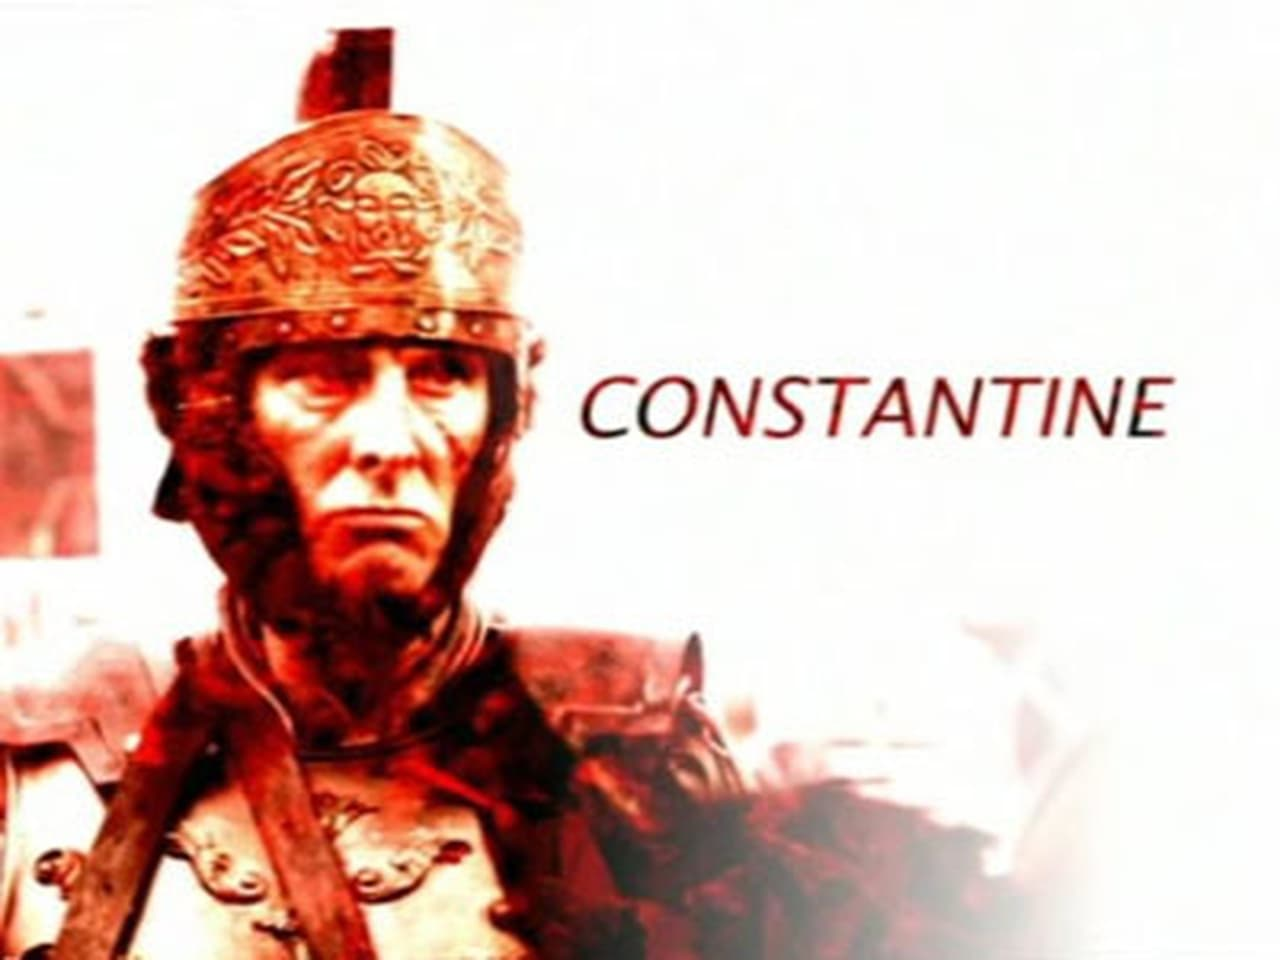 Ancient Rome The Rise and Fall of an Empire Episode: Constantine